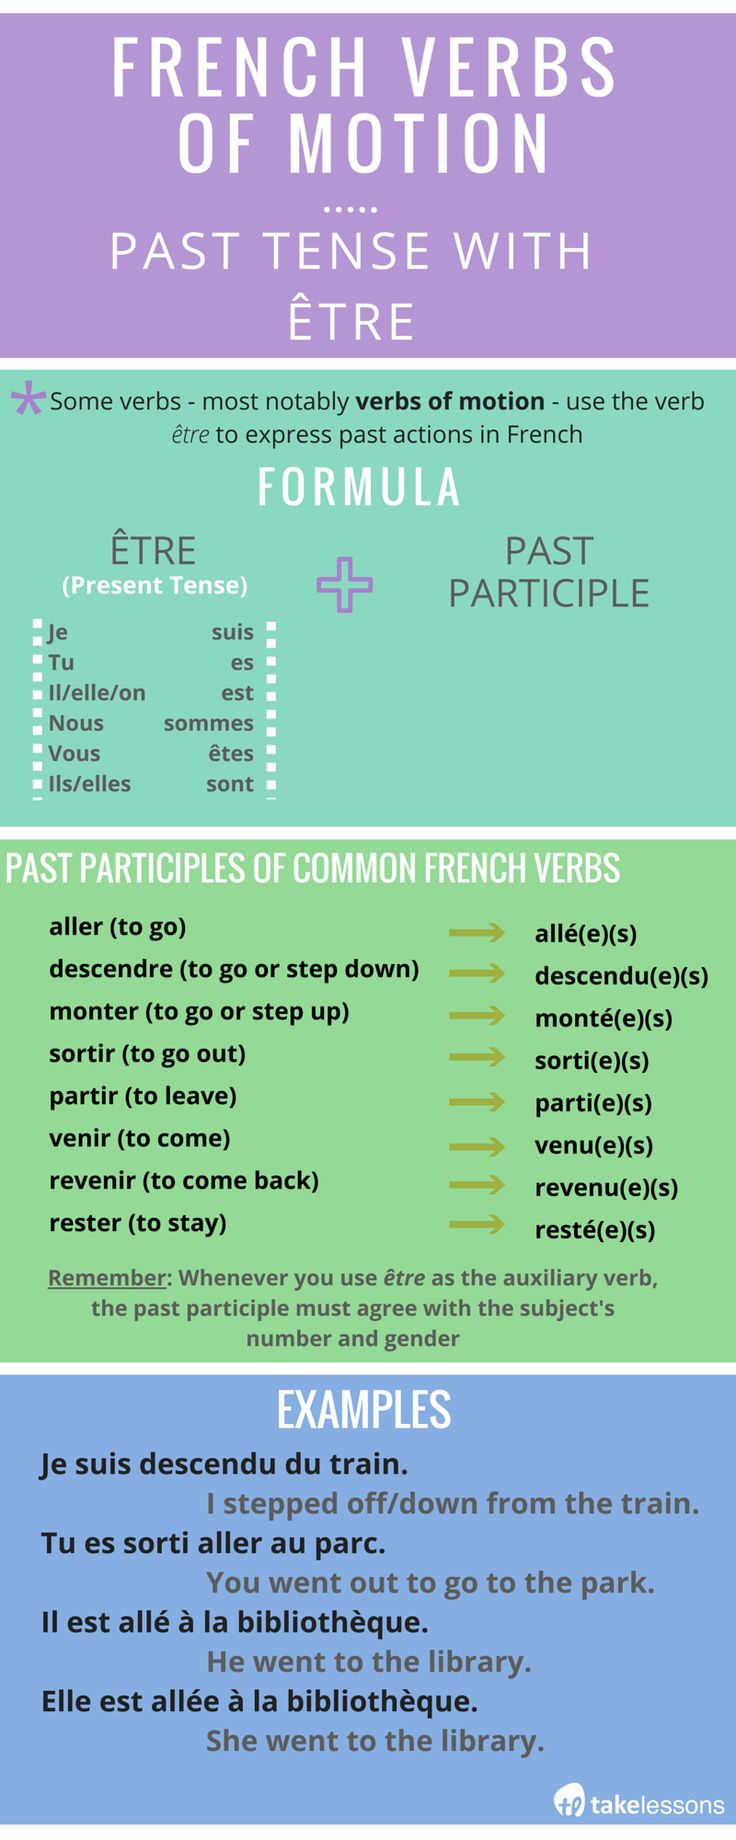 French Verbs of Motion: Conjugating the Past Tense with Être http://takelessons.com/blog/french-verbs-past-tense-with-etre-z04?utm_source=social&utm_medium=blog&utm_campaign=pinterest